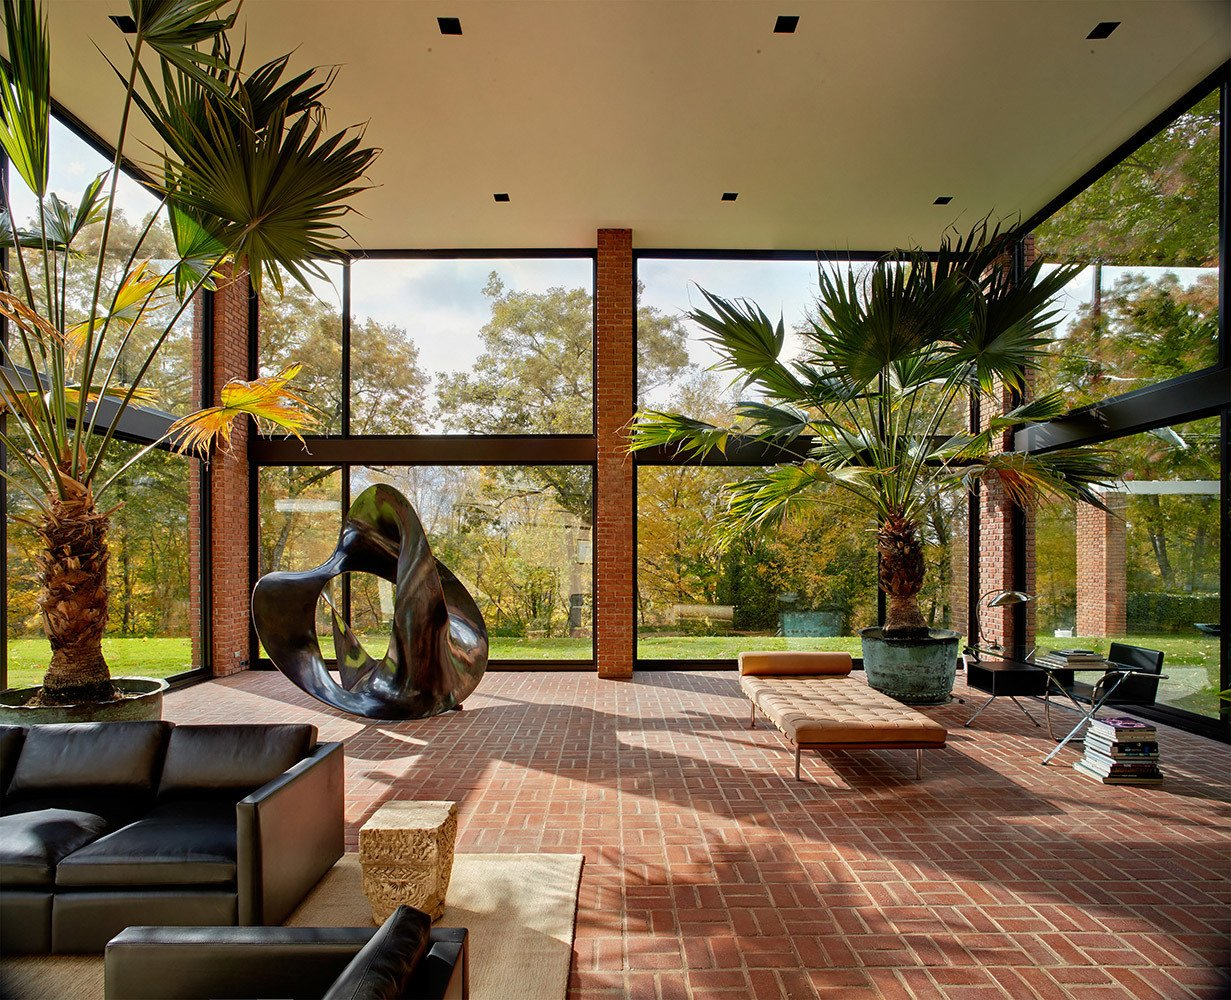 Designed by Philip Johnson for Eric Boissonnas and his family, this house was completed in 1956. Originally designed as a series of pavilions constructed of steel, brick, and glass, the home has since been updated by subsequent owners.  Photo 7 of 8 in There's No Shortage of Glass in These 7 Homes Designed by Philip Johnson